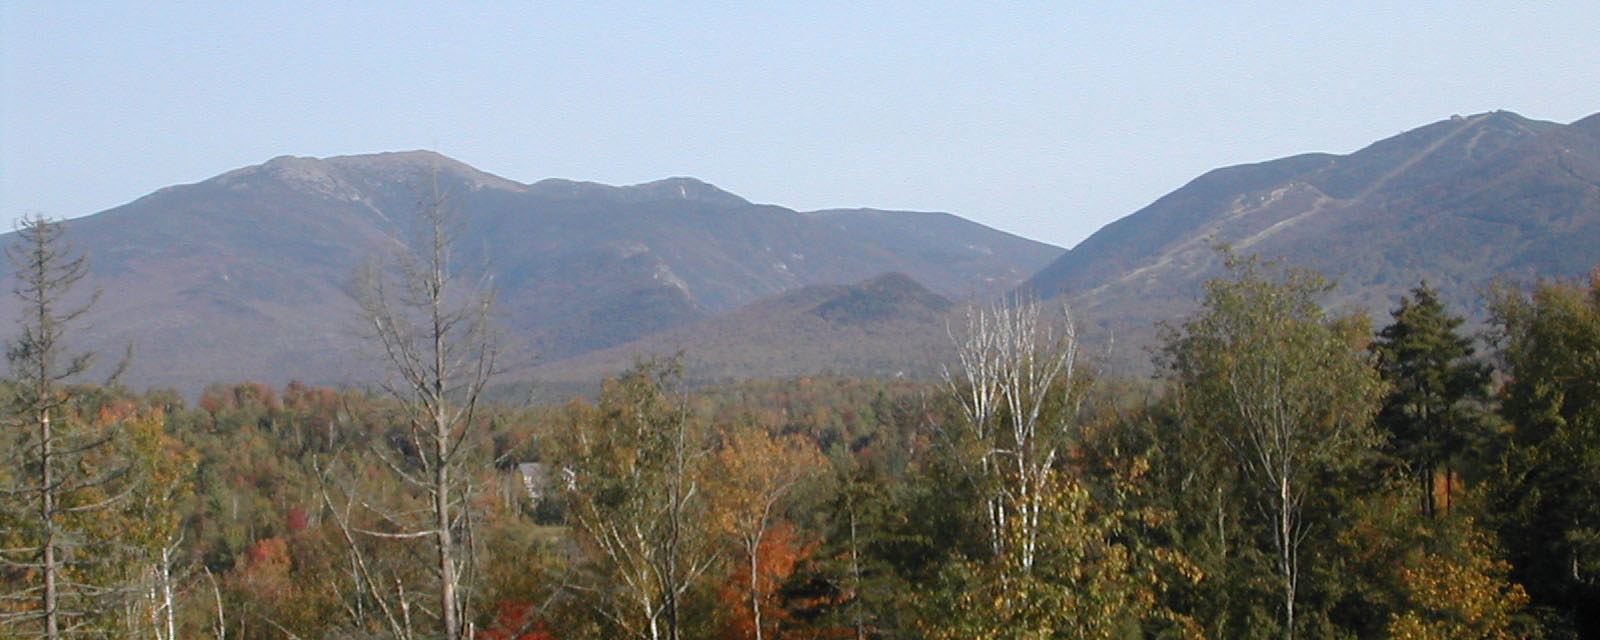 mountains in the fall